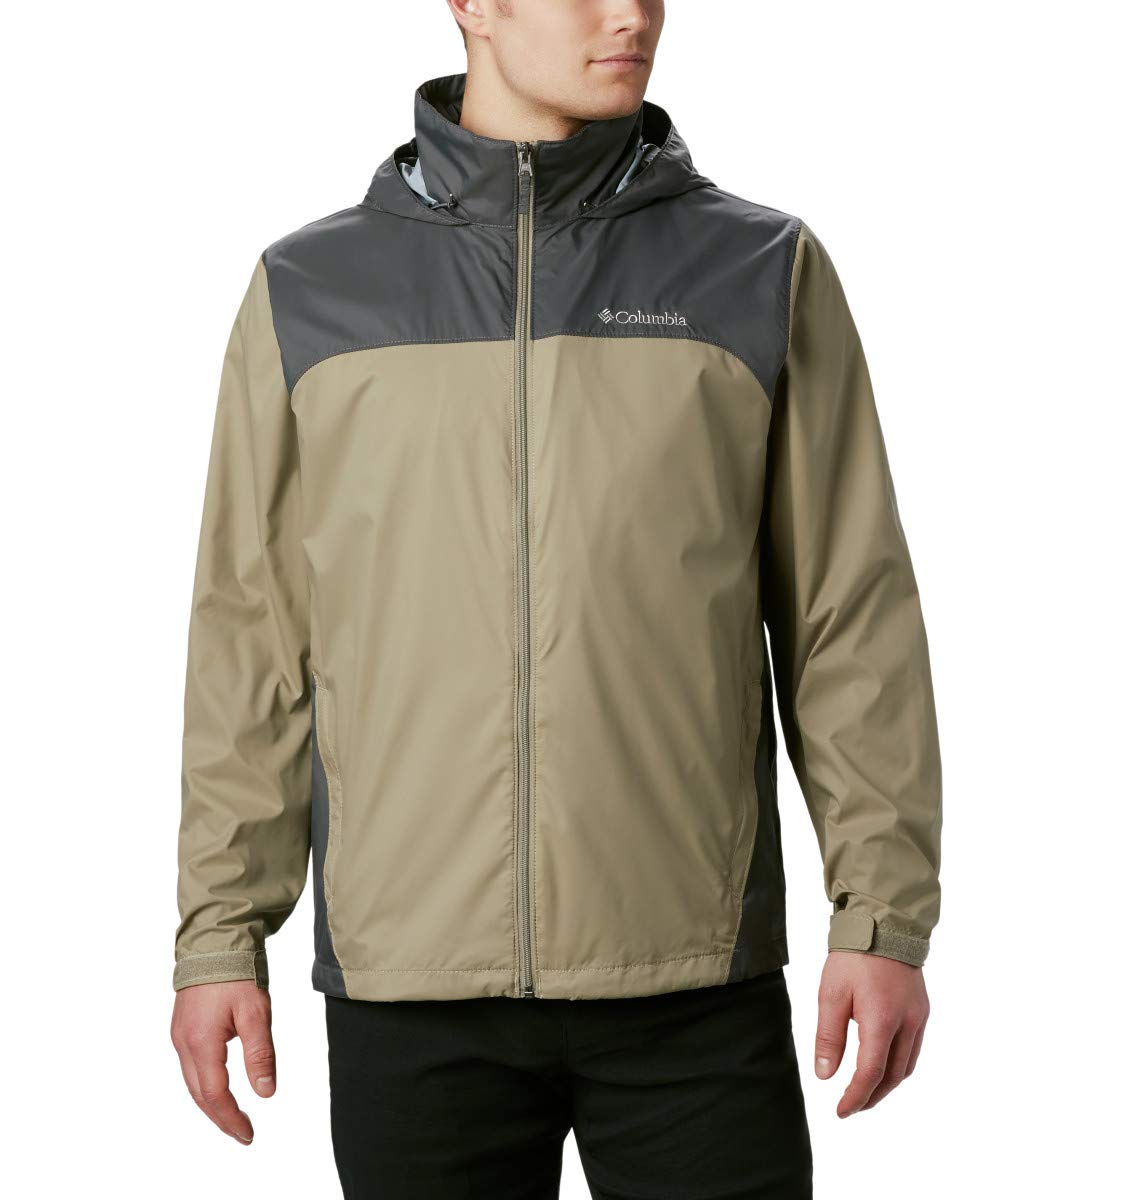 Columbia Men's Glennaker Lake Front-Zip Rain Jacket with Hideaway Hood, Tusk/Grill, XX-Large by Columbia